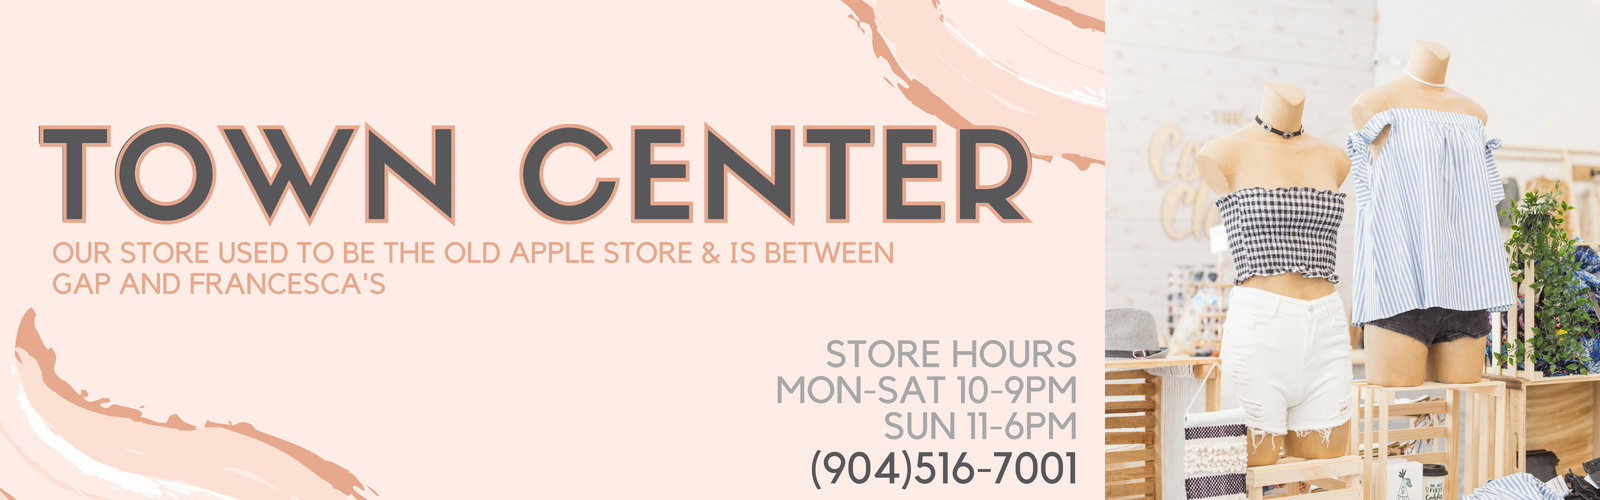 Town Center. Our store used to be the old apple store & is between GAP and Francessca's. Store hours are Monday through Saturday from 10am to 9pm and Sunday from 11am to 6pm. Our Town center store can be reached at 904-516-7001.